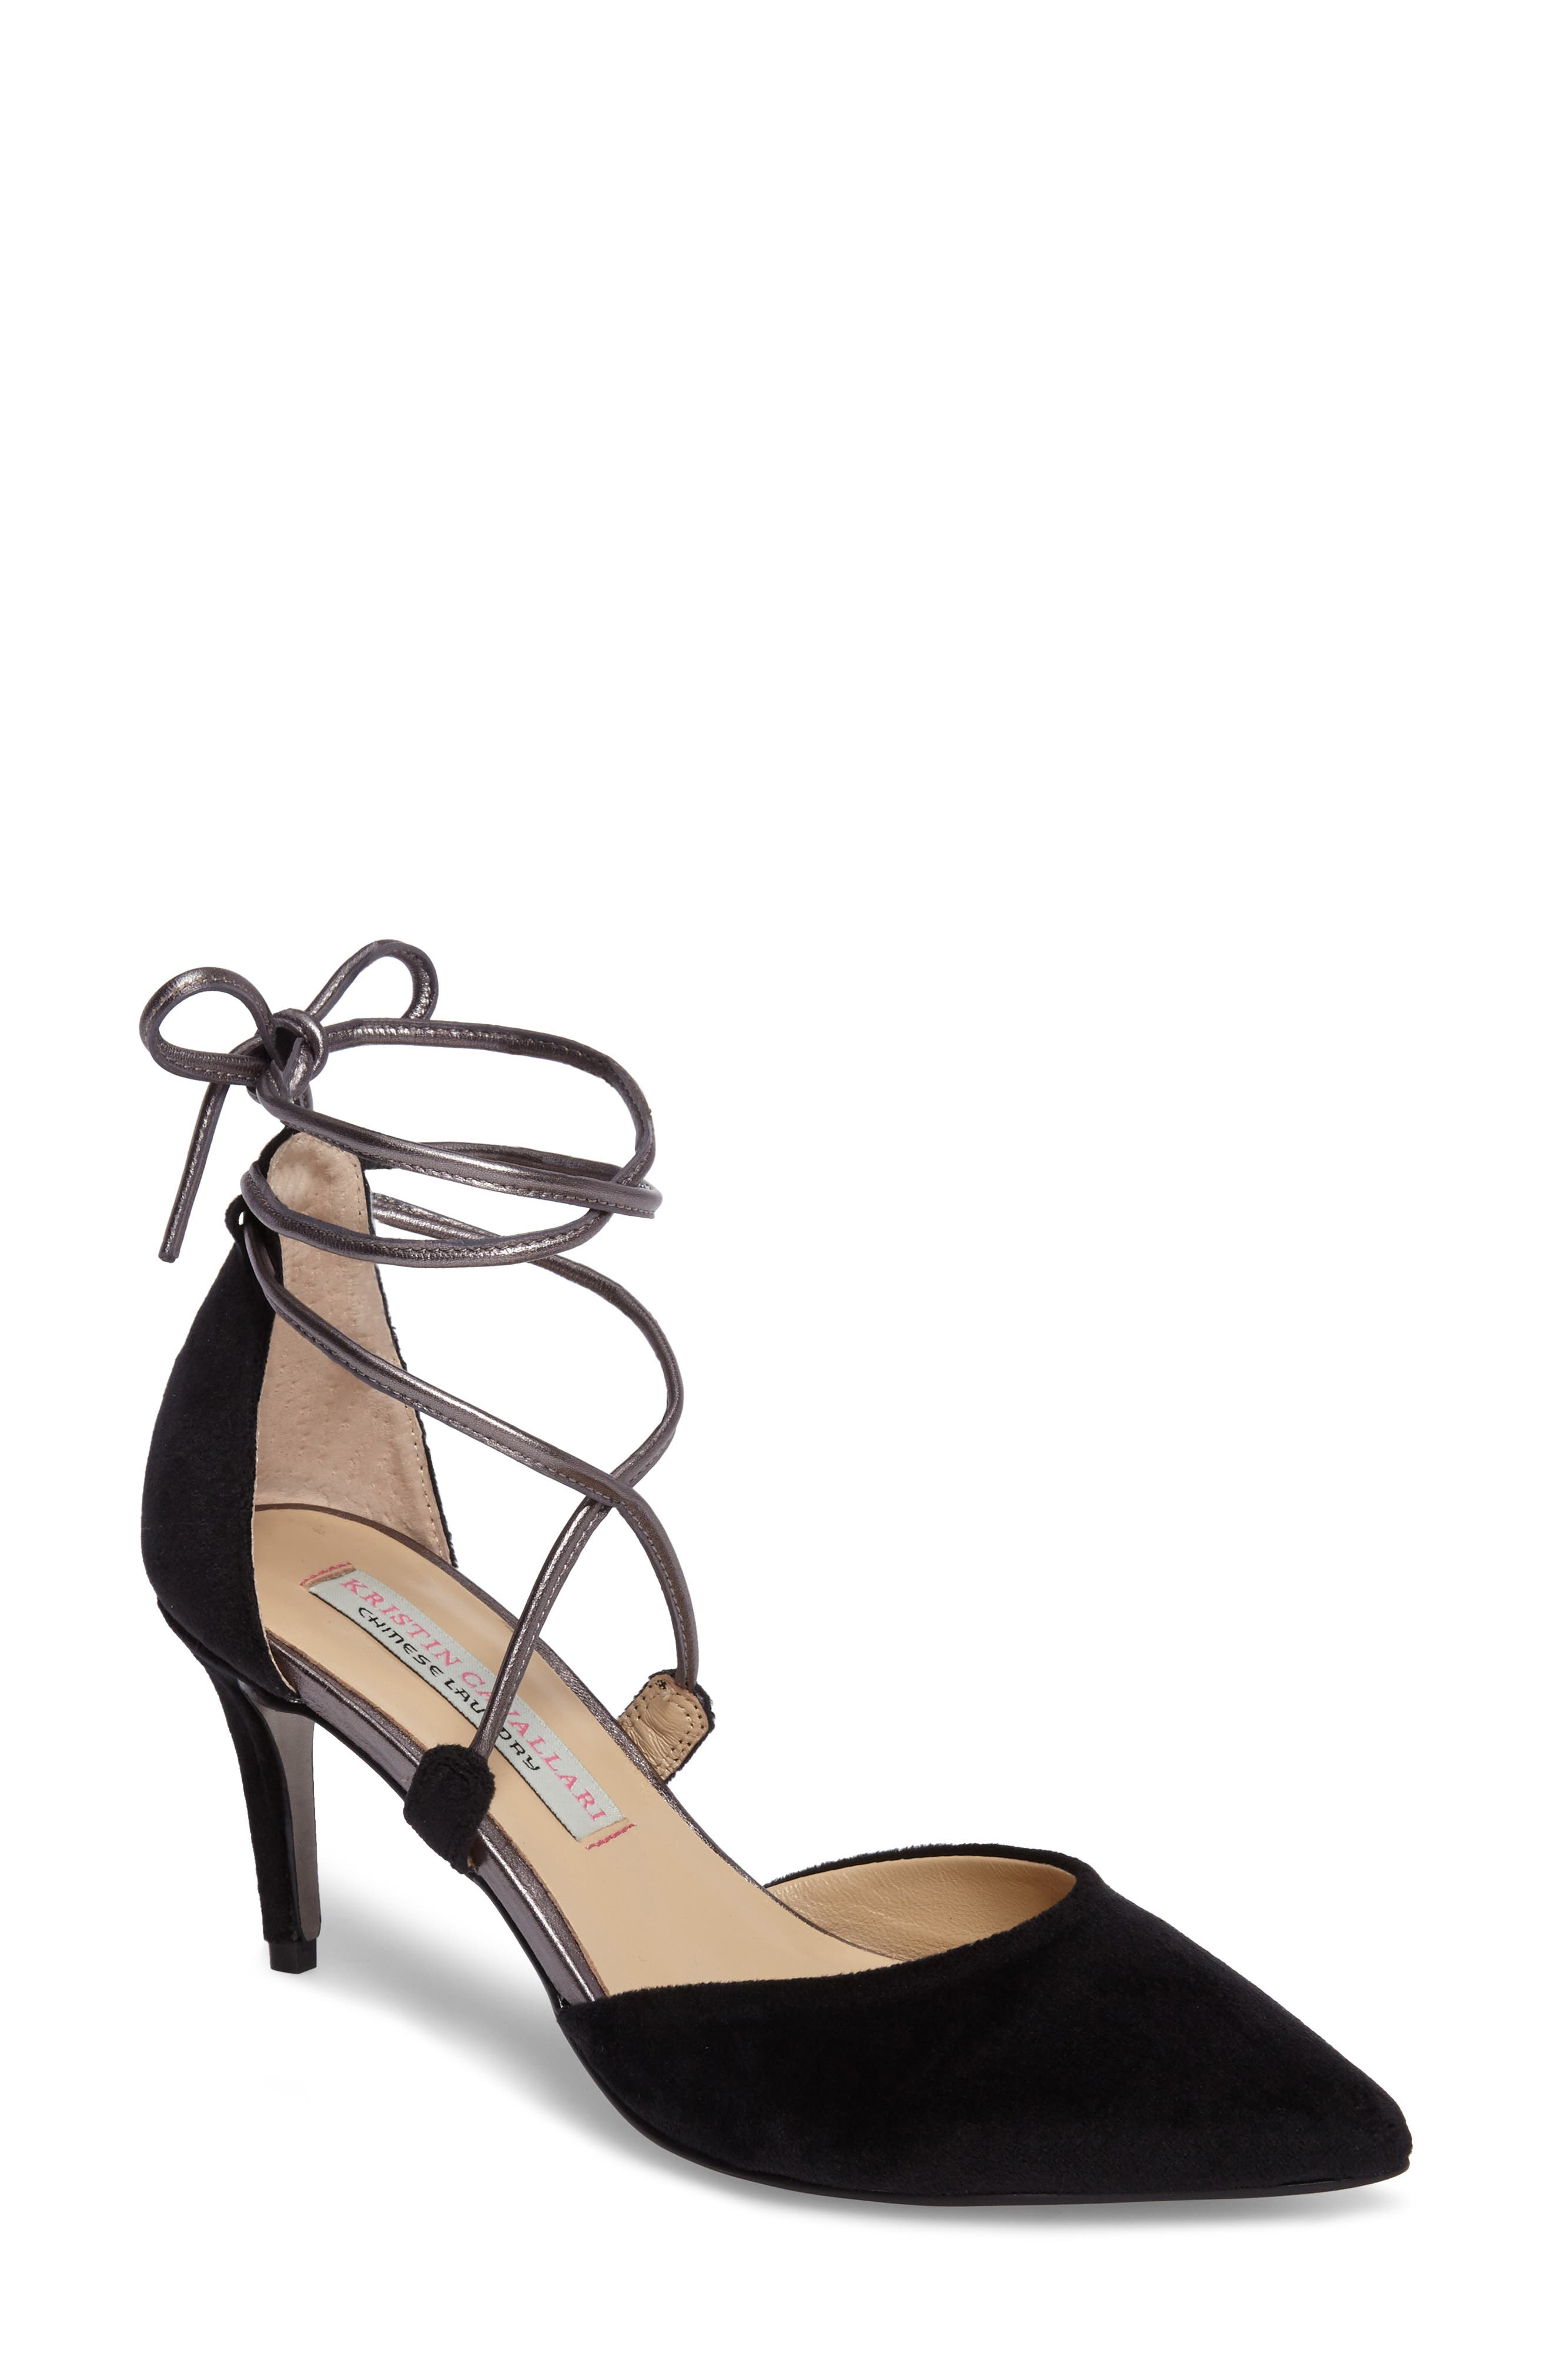 'Opel' Lace-Up Pointy Toe Pump,                             Main thumbnail 1, color,                             002